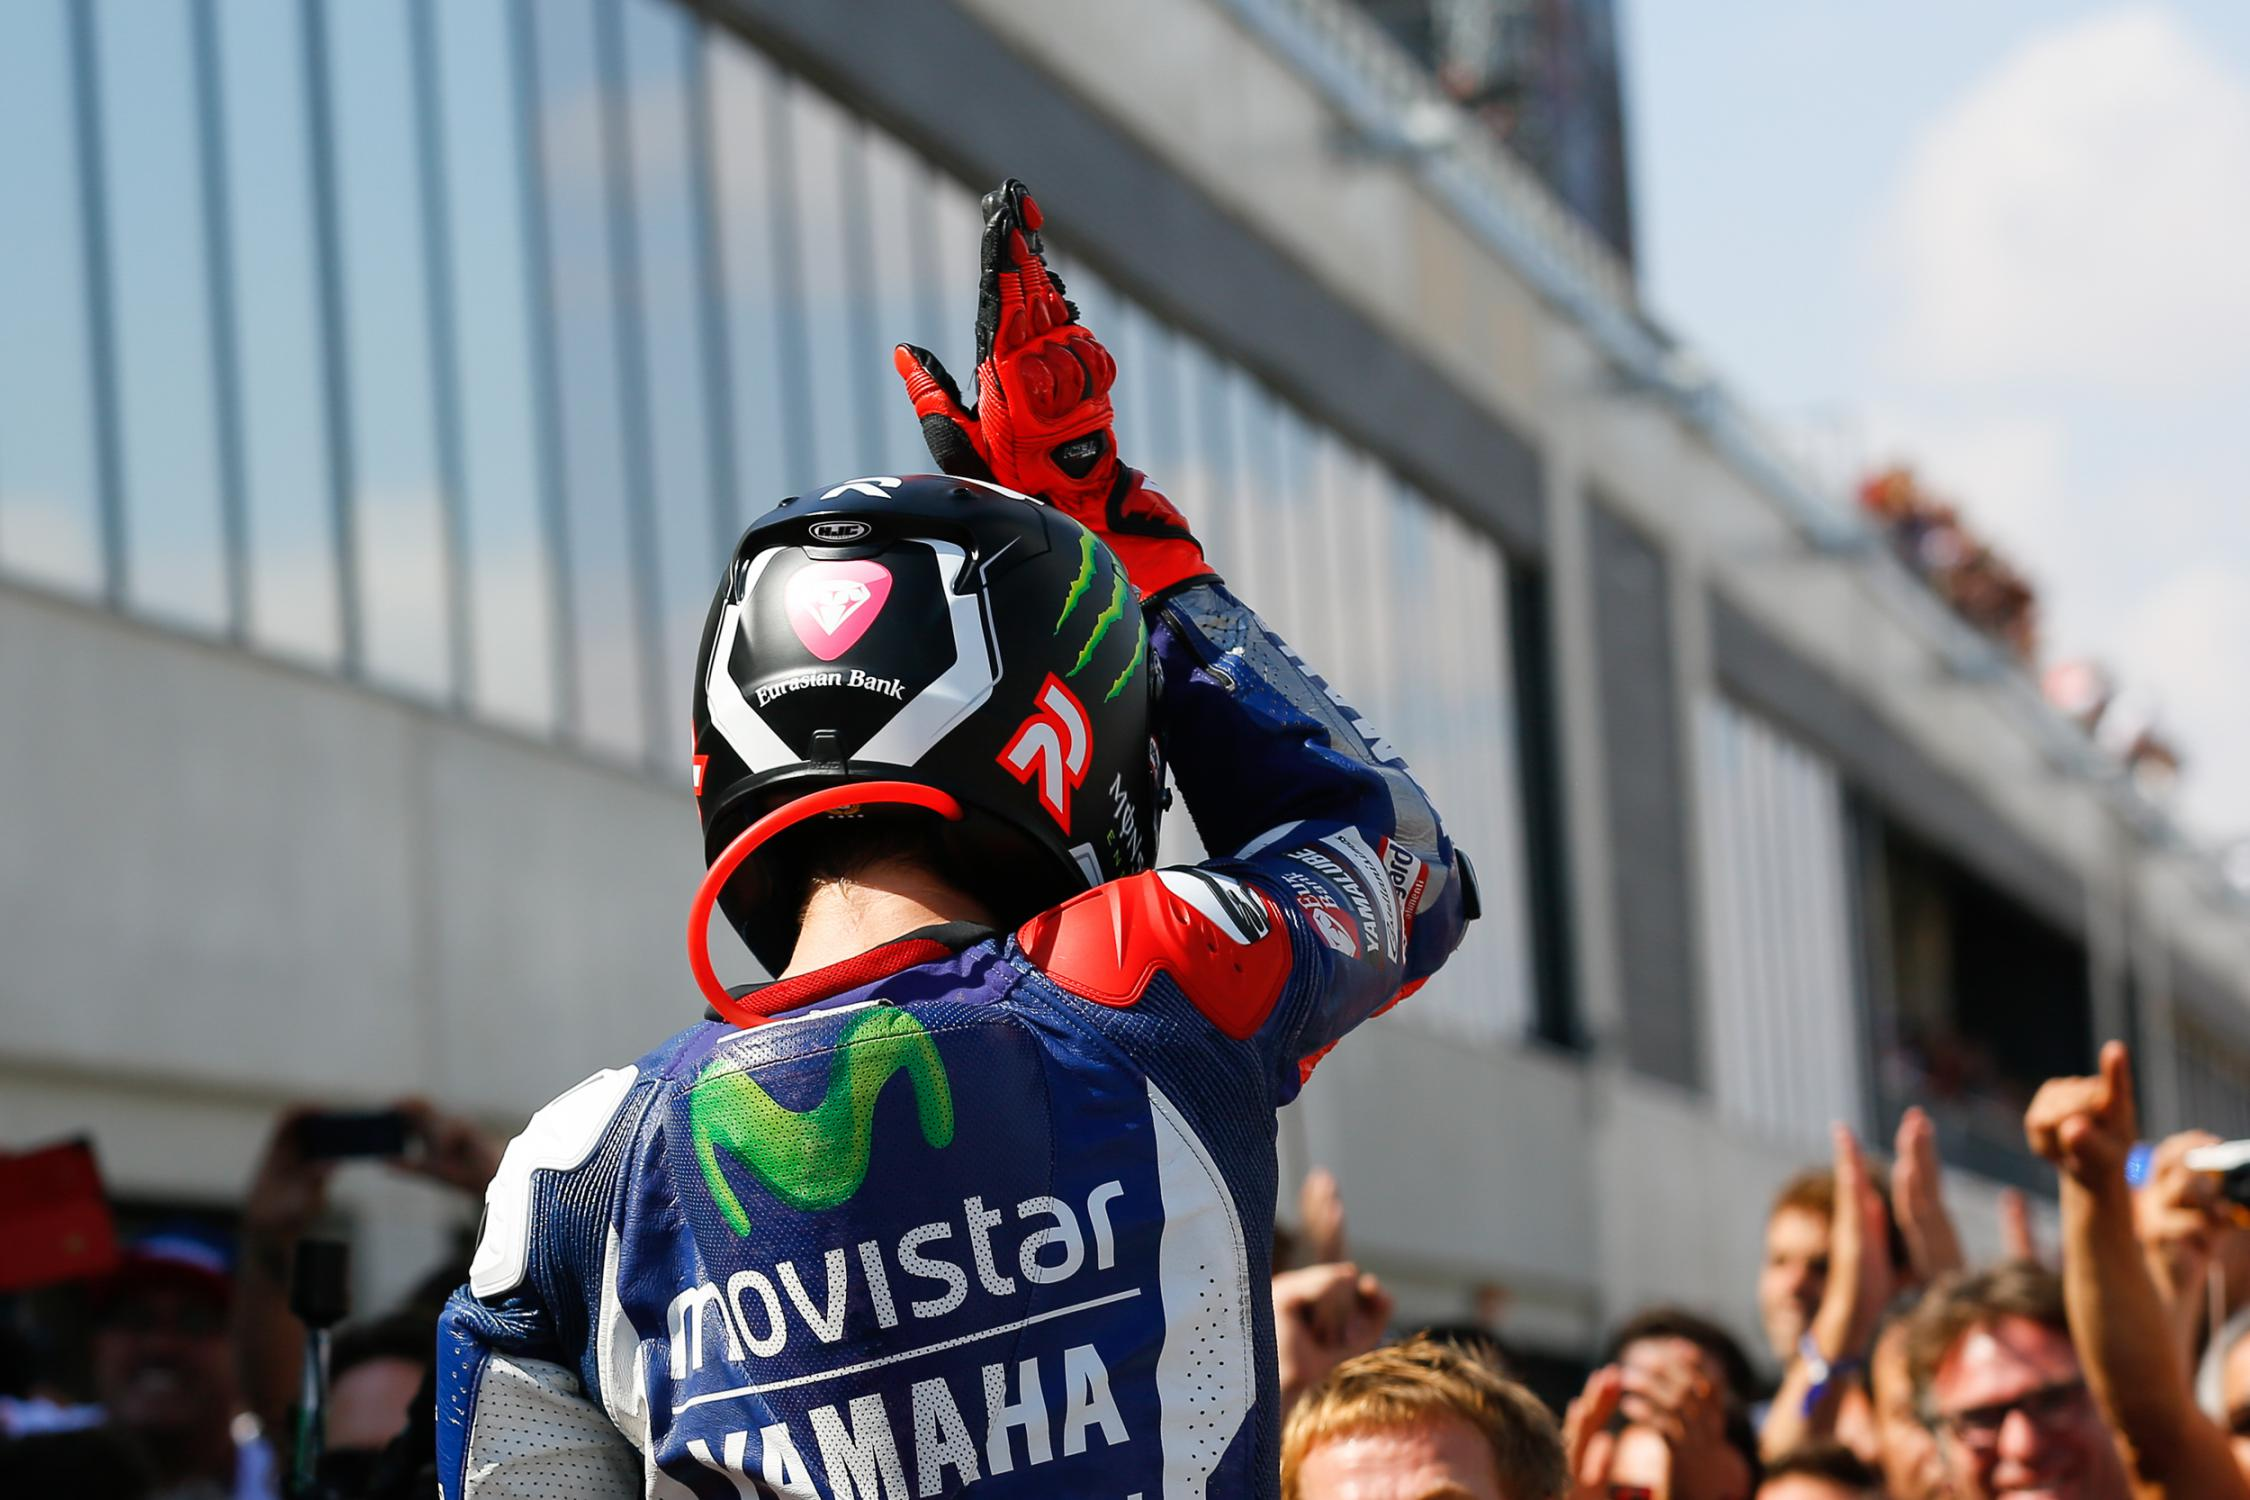 [GP] Aragon 001_99-lorenzo_gp_2444-2.gallery_full_top_fullscreen